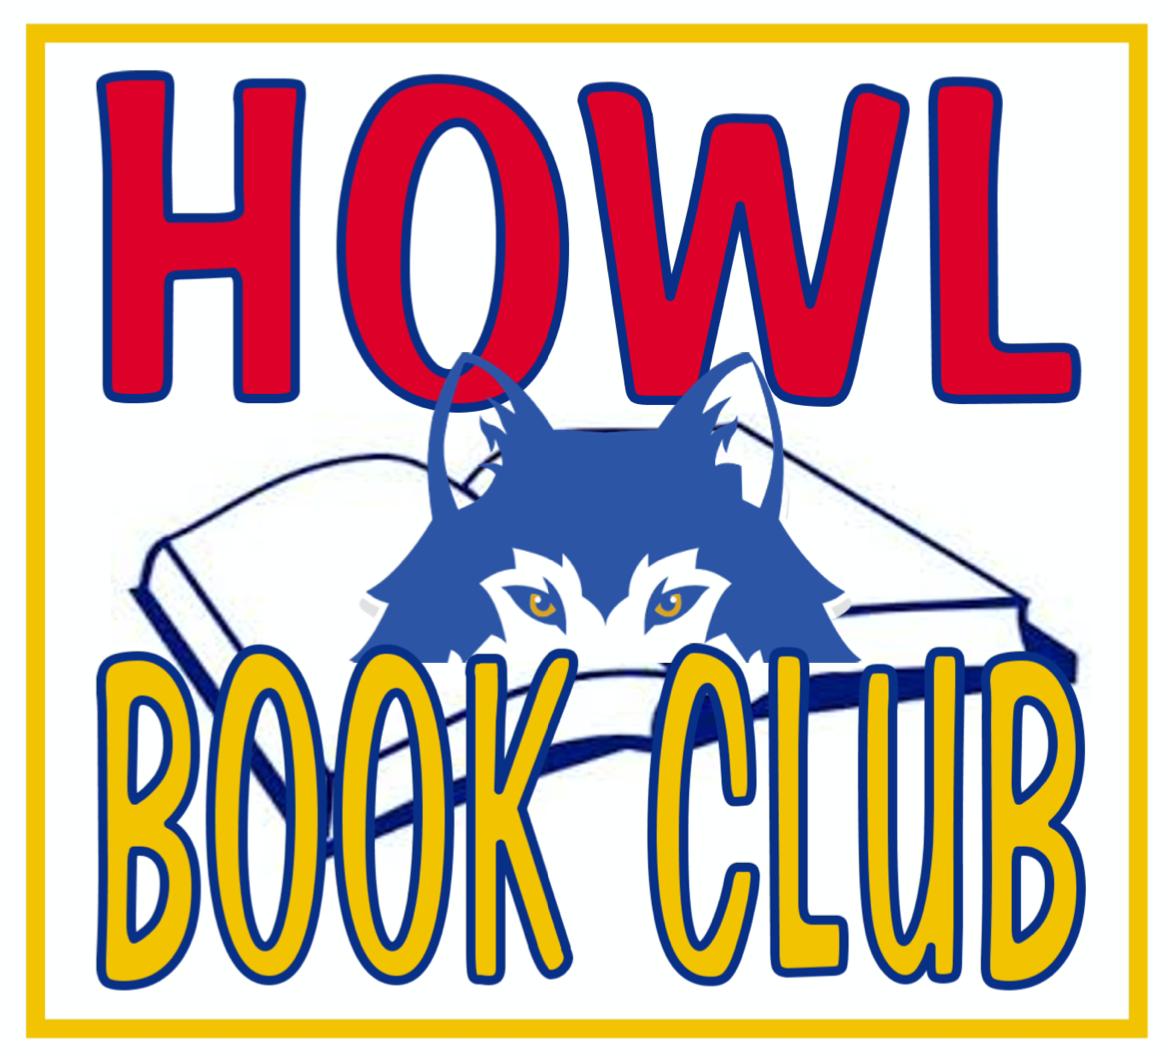 HOWL BOOK CLUB